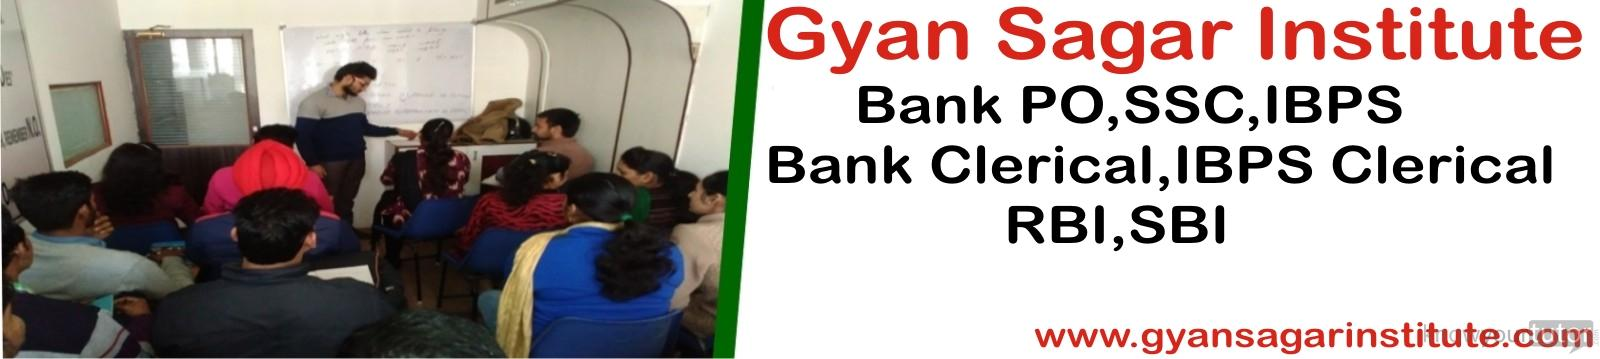 Gyan Sagar Institute is leaving to appointment New Batch for CA CPT Entrance Exam 2018